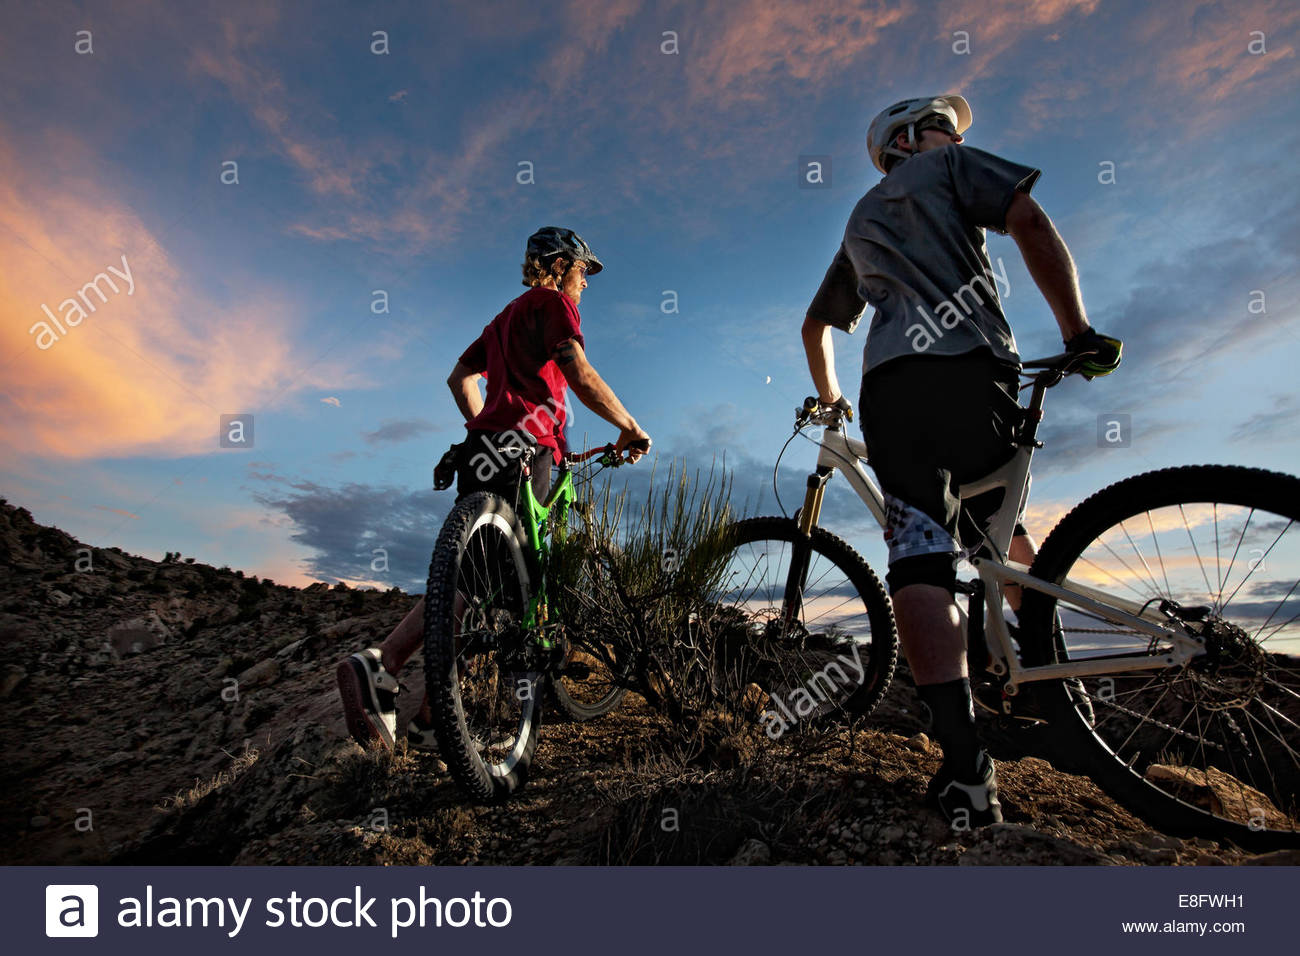 Bikers enjoying evening sky - Stock Image